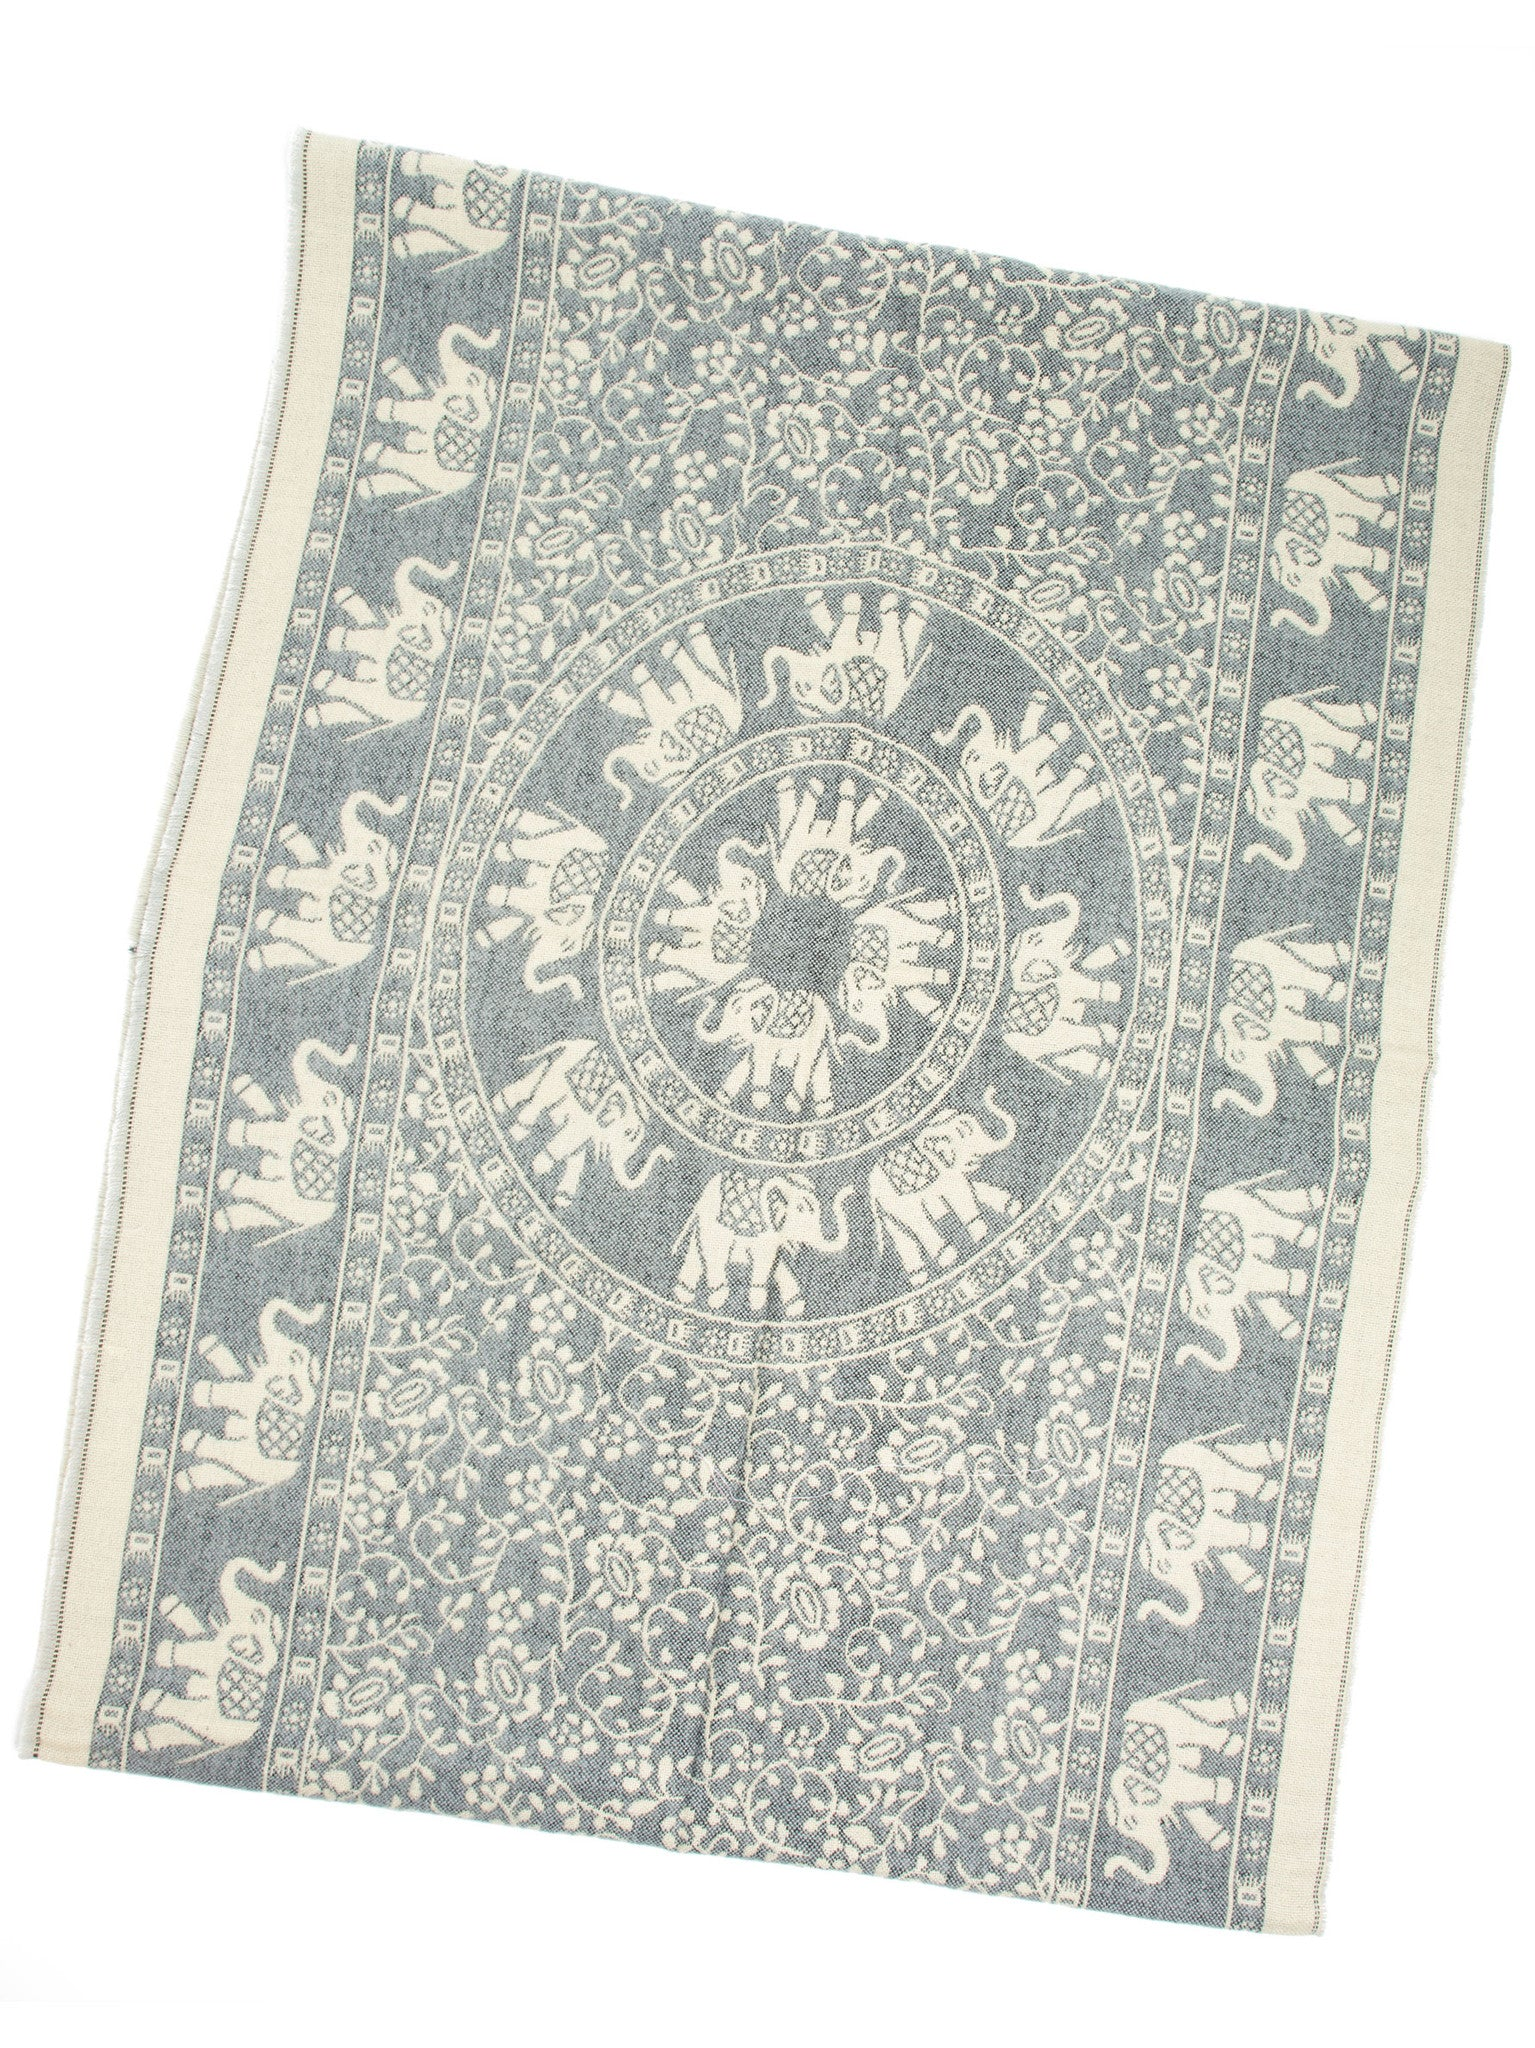 Scarves - Hathi Winter Infinity Scarf, Blanket Scarf, Indian Elephant Design -() Bohomonde  - 4